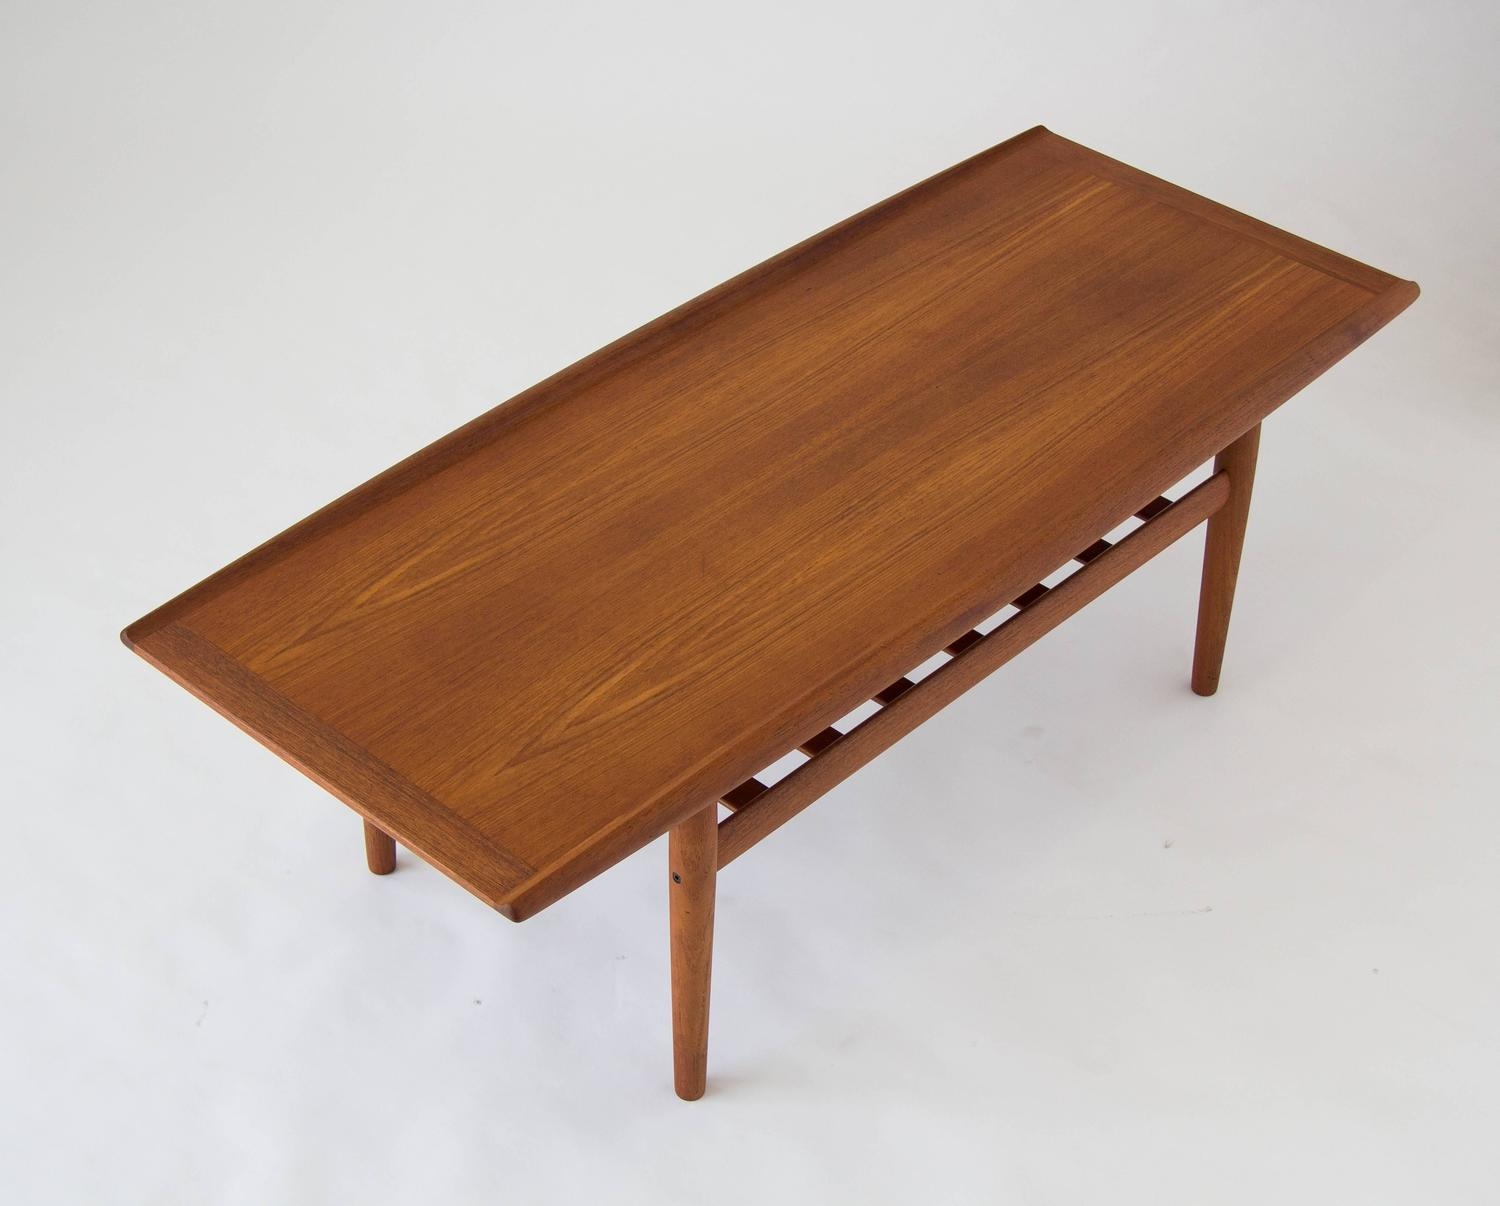 Grete Jalk Coffee Table With Slatted Shelf For Sale At 1stdibs